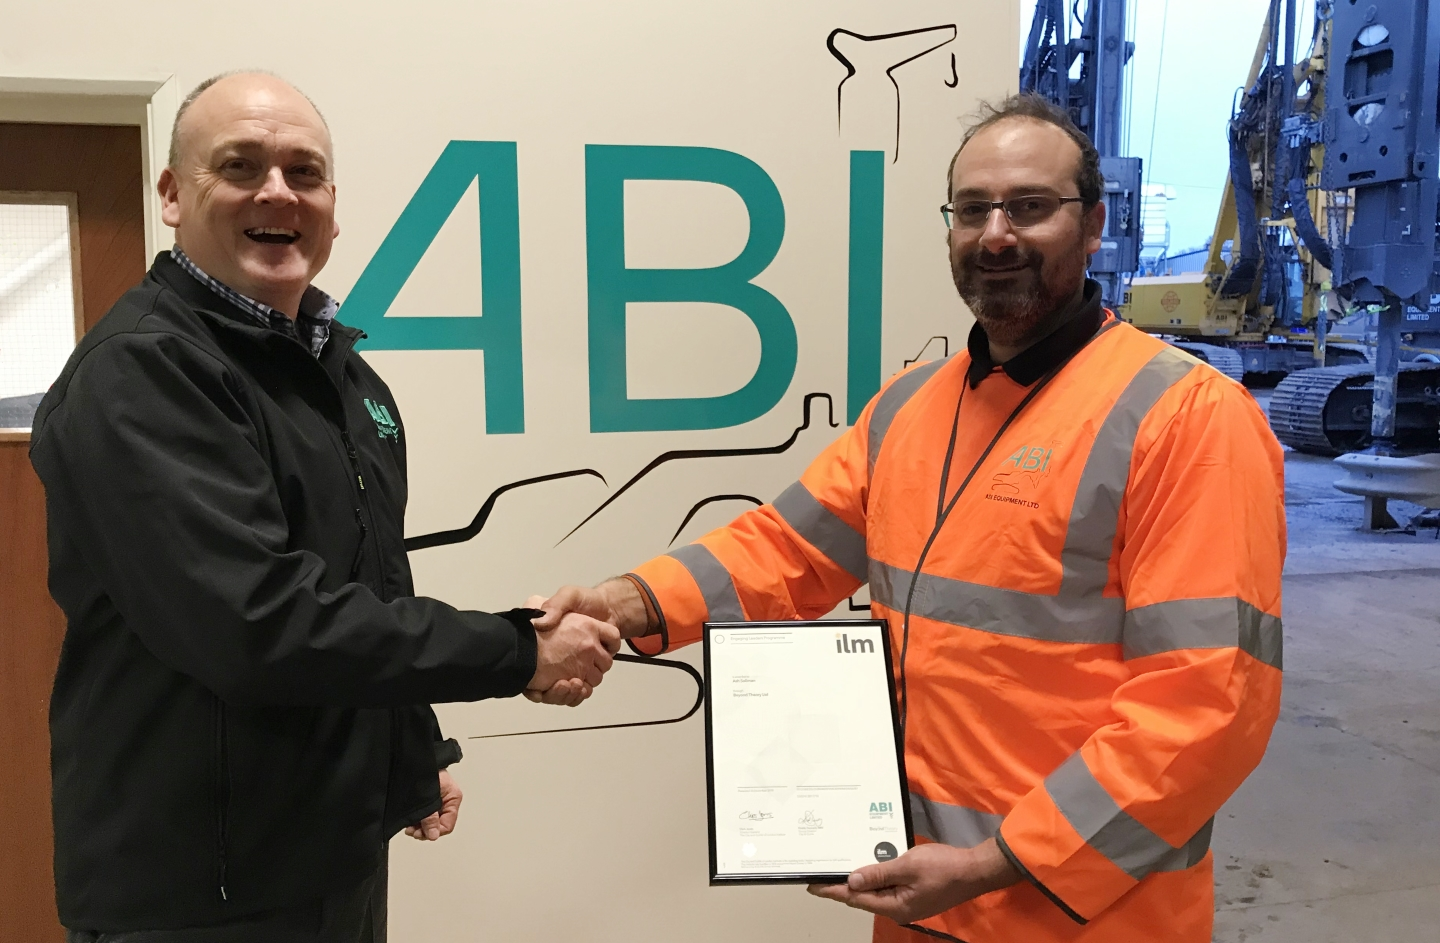 Congratulations to a valued member of the ABI team!